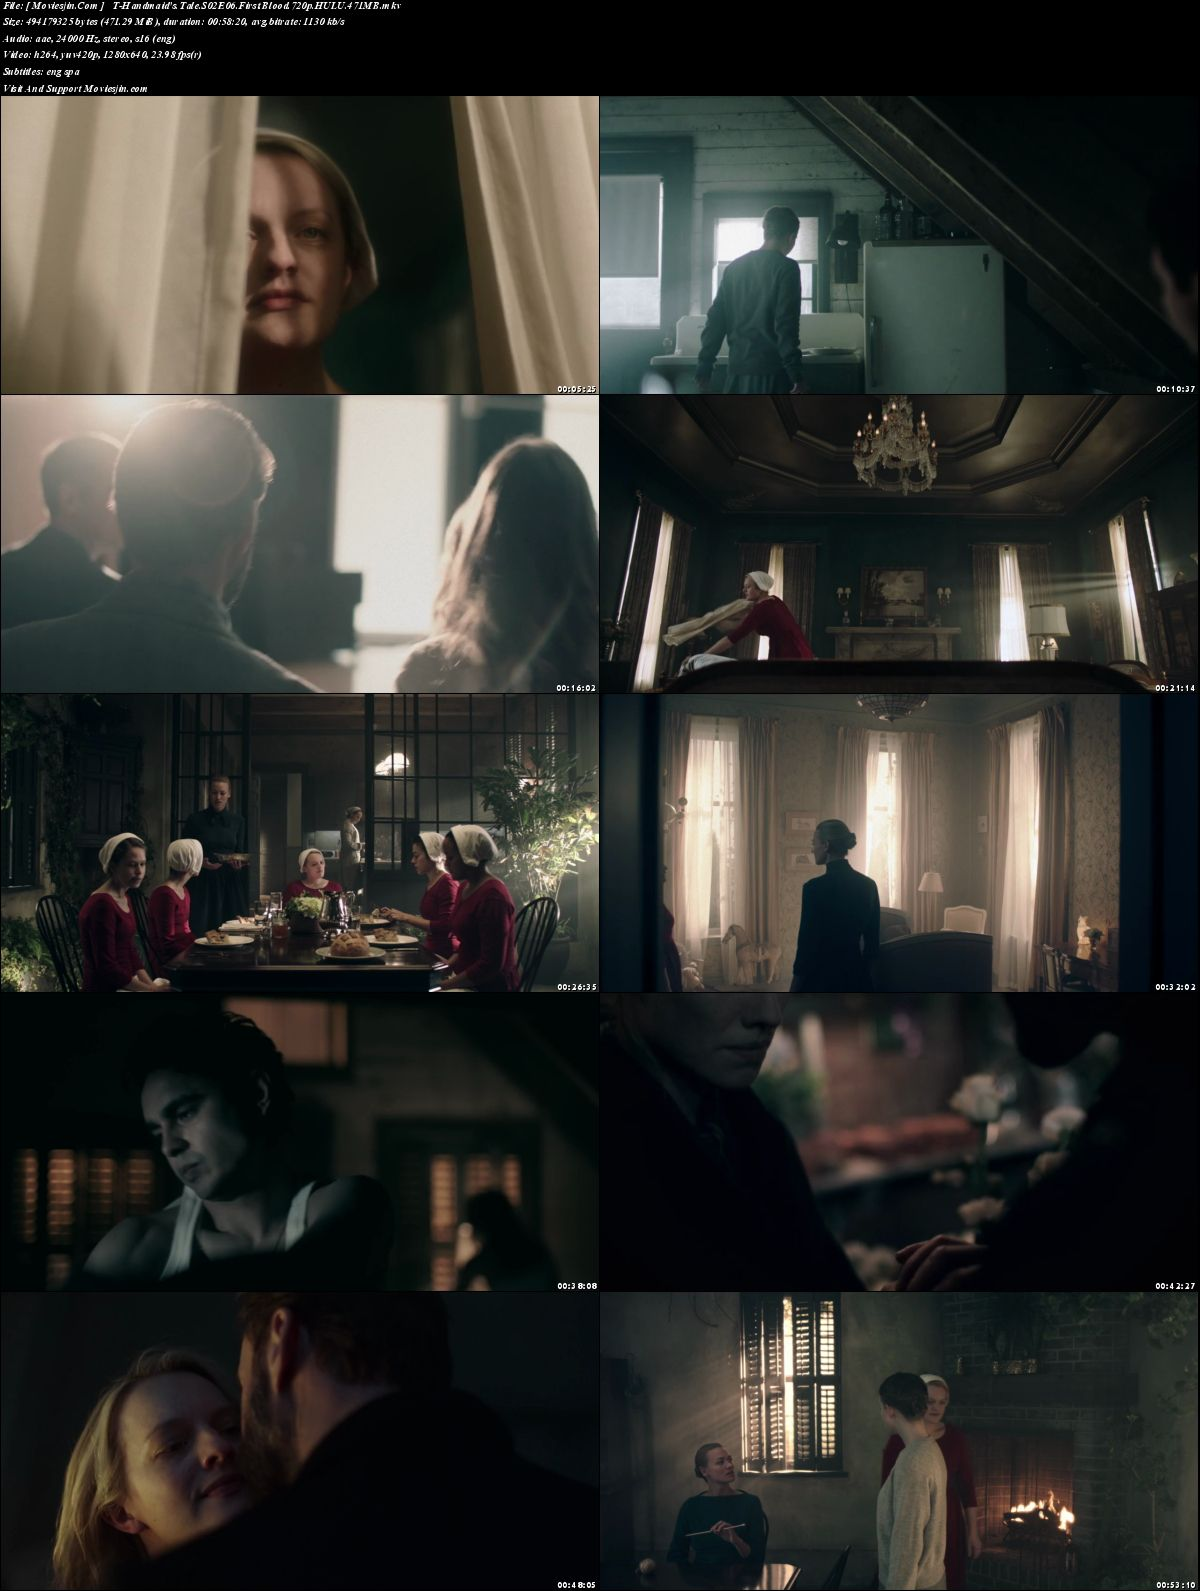 Watch Online The Handmaids Tale S02E06 WEBDL HULU x264 720p ESub 471MB  Full Download mkvcage